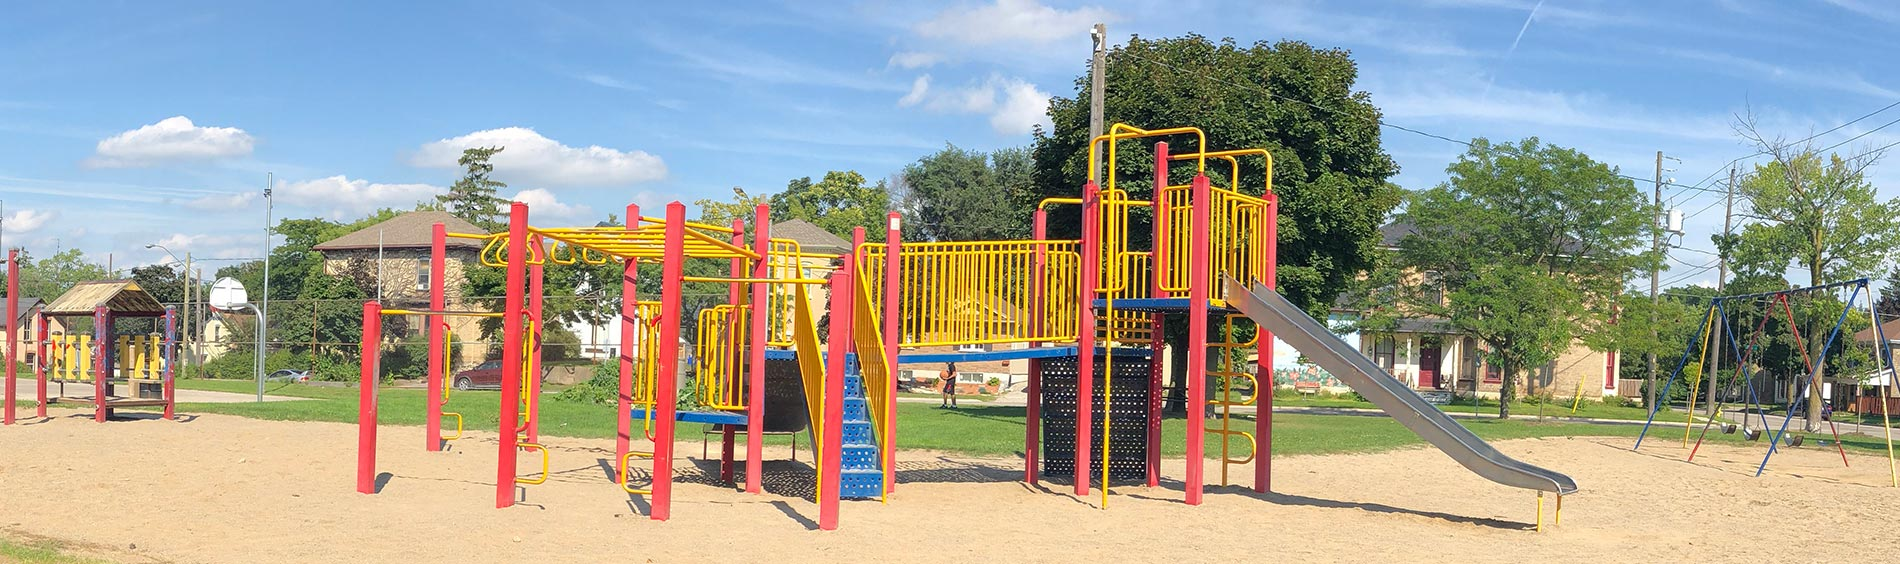 City of Brantford Park Playground